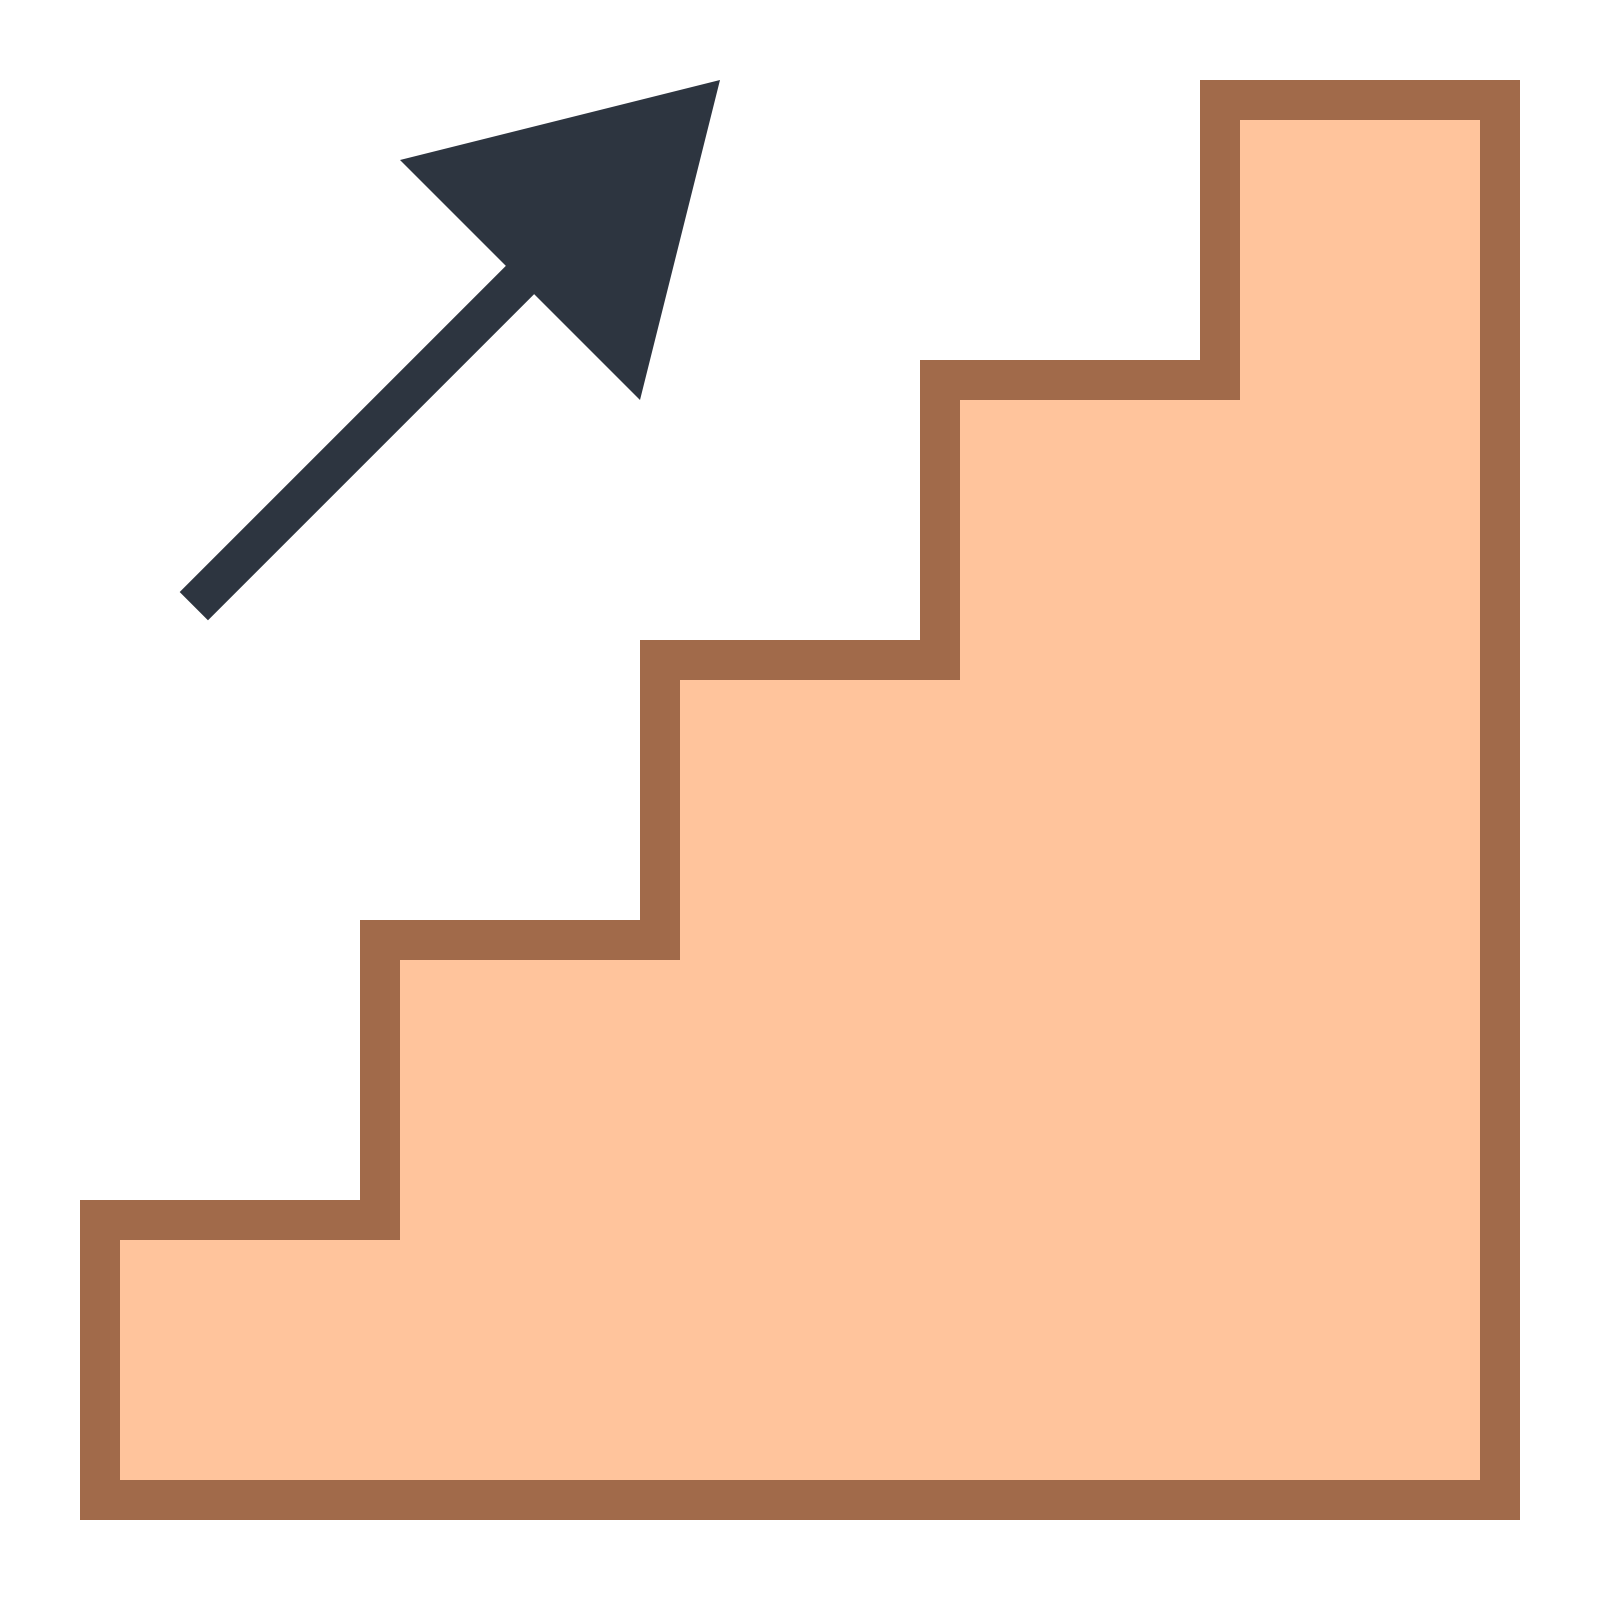 Icon illustration symbol design. Staircase clipart basement stair